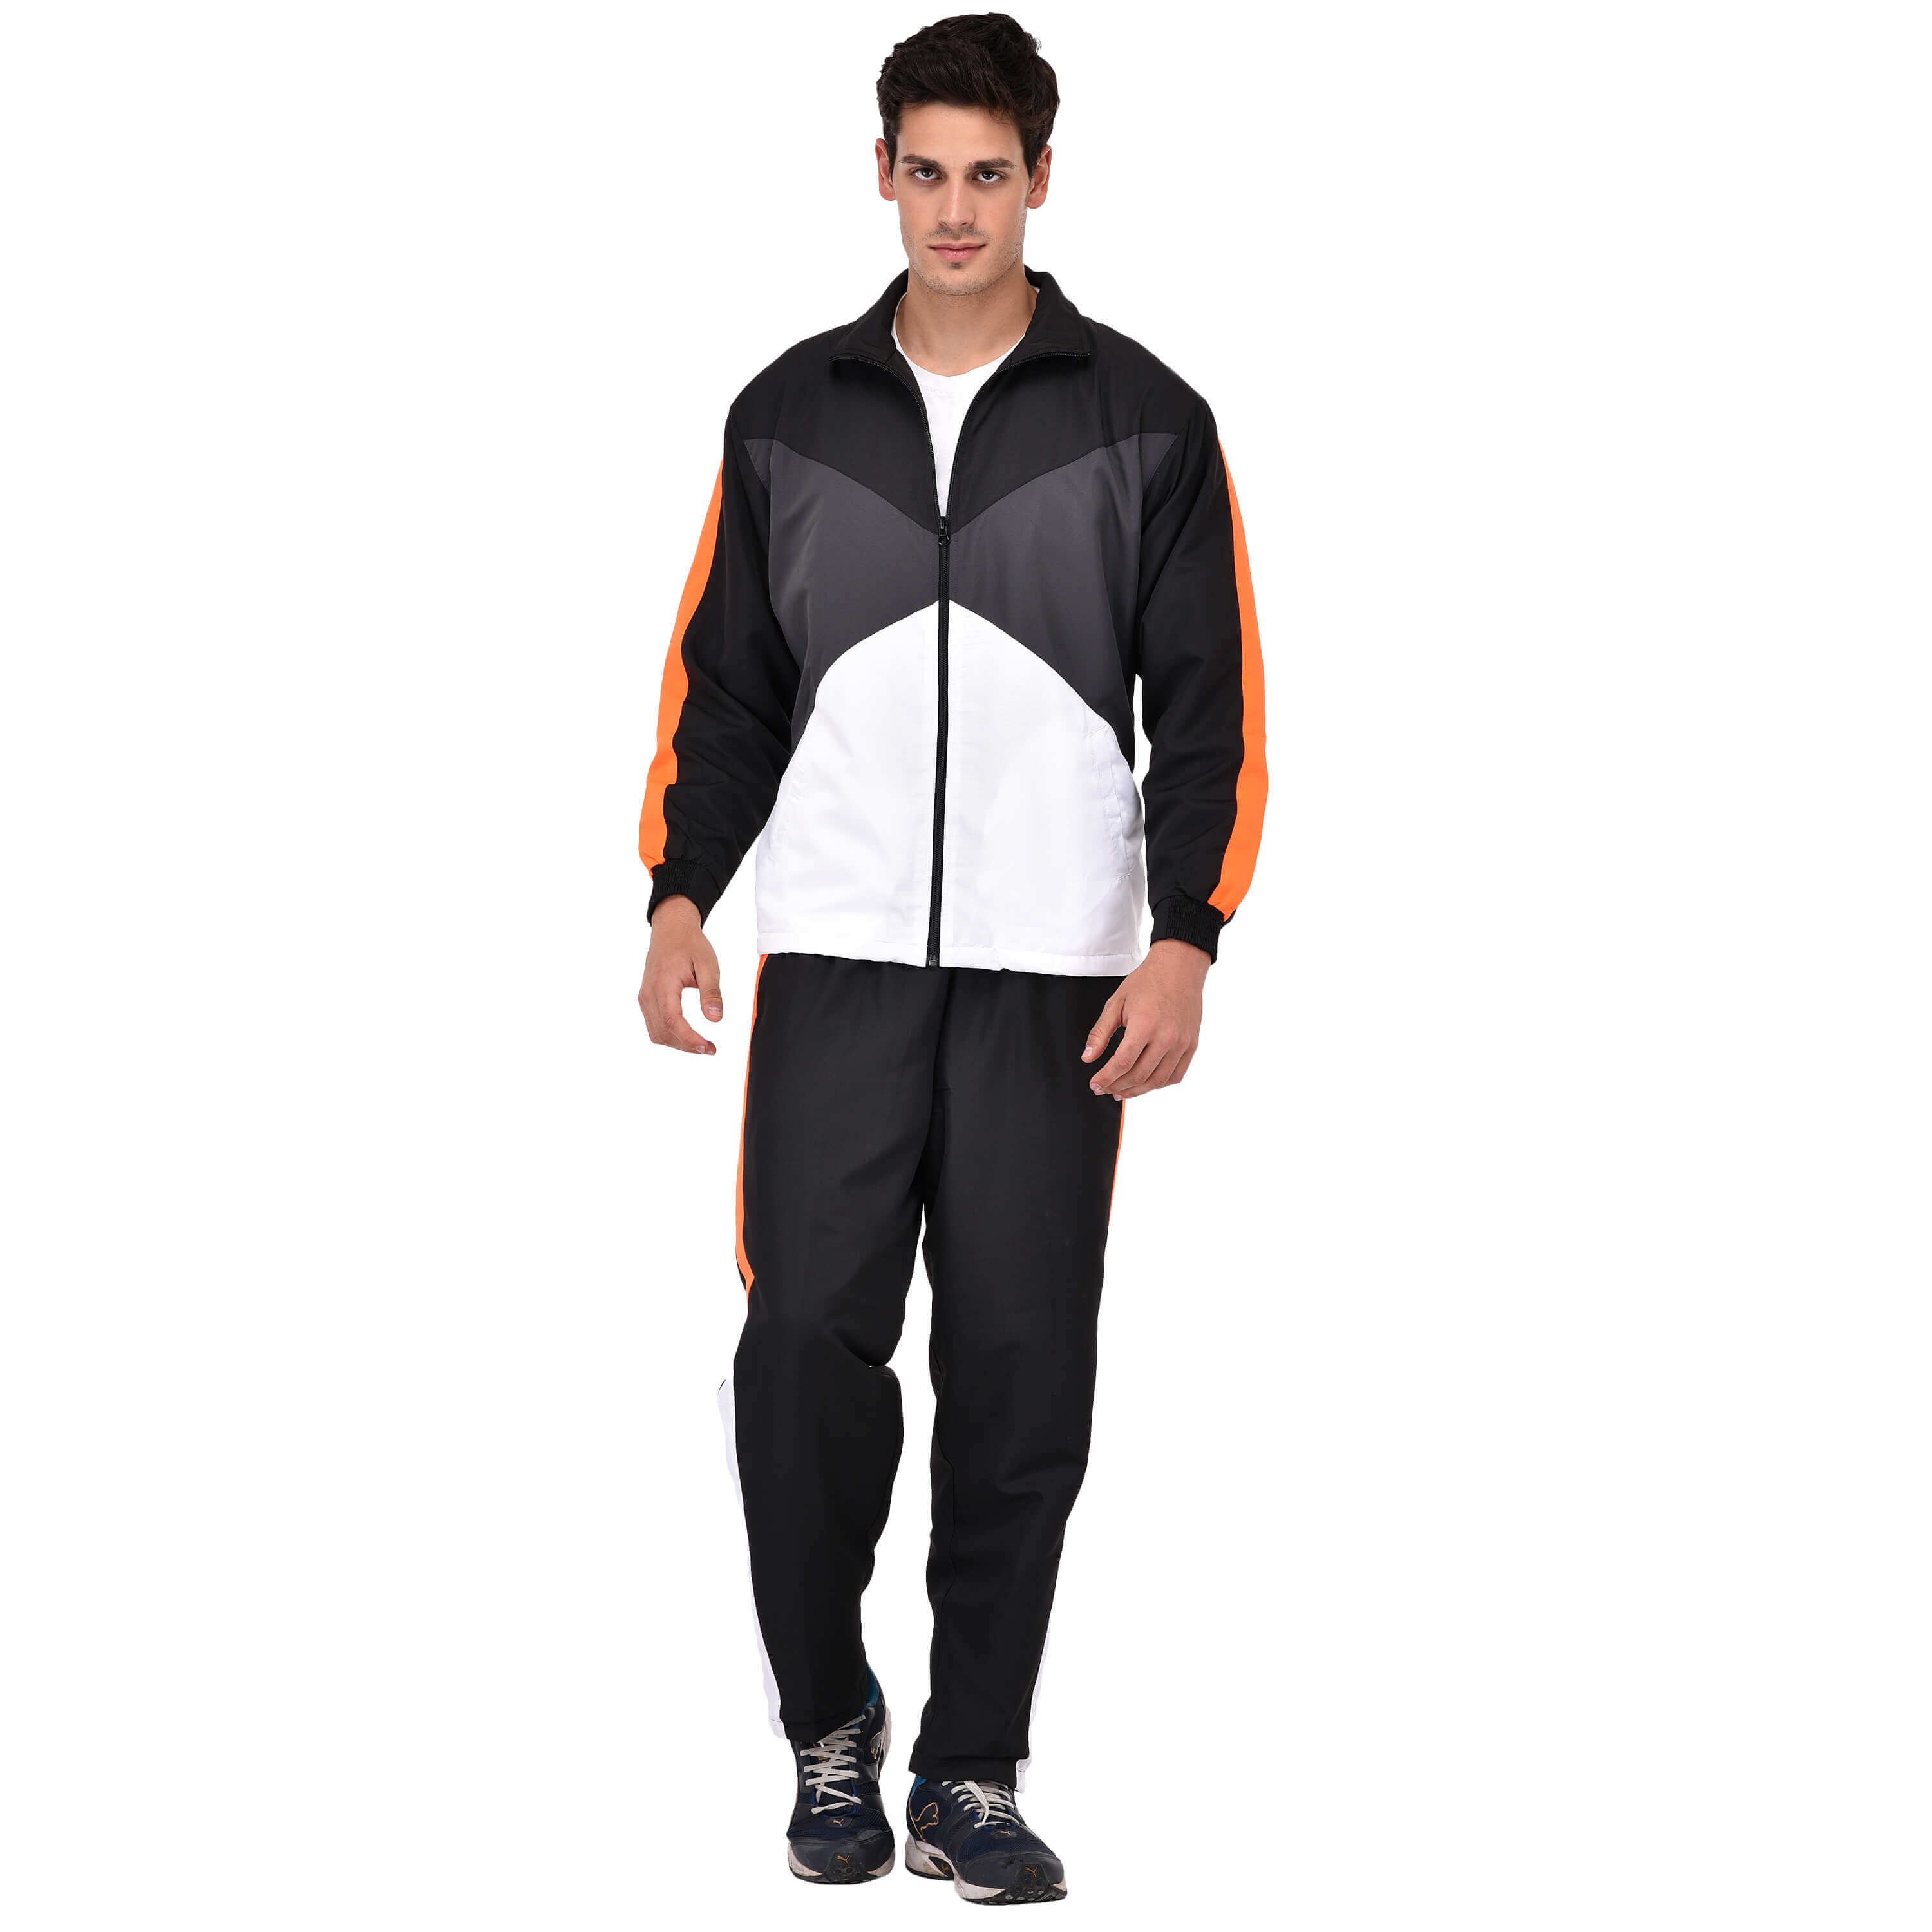 Sports Tracksuit Manufacturers in Nanded